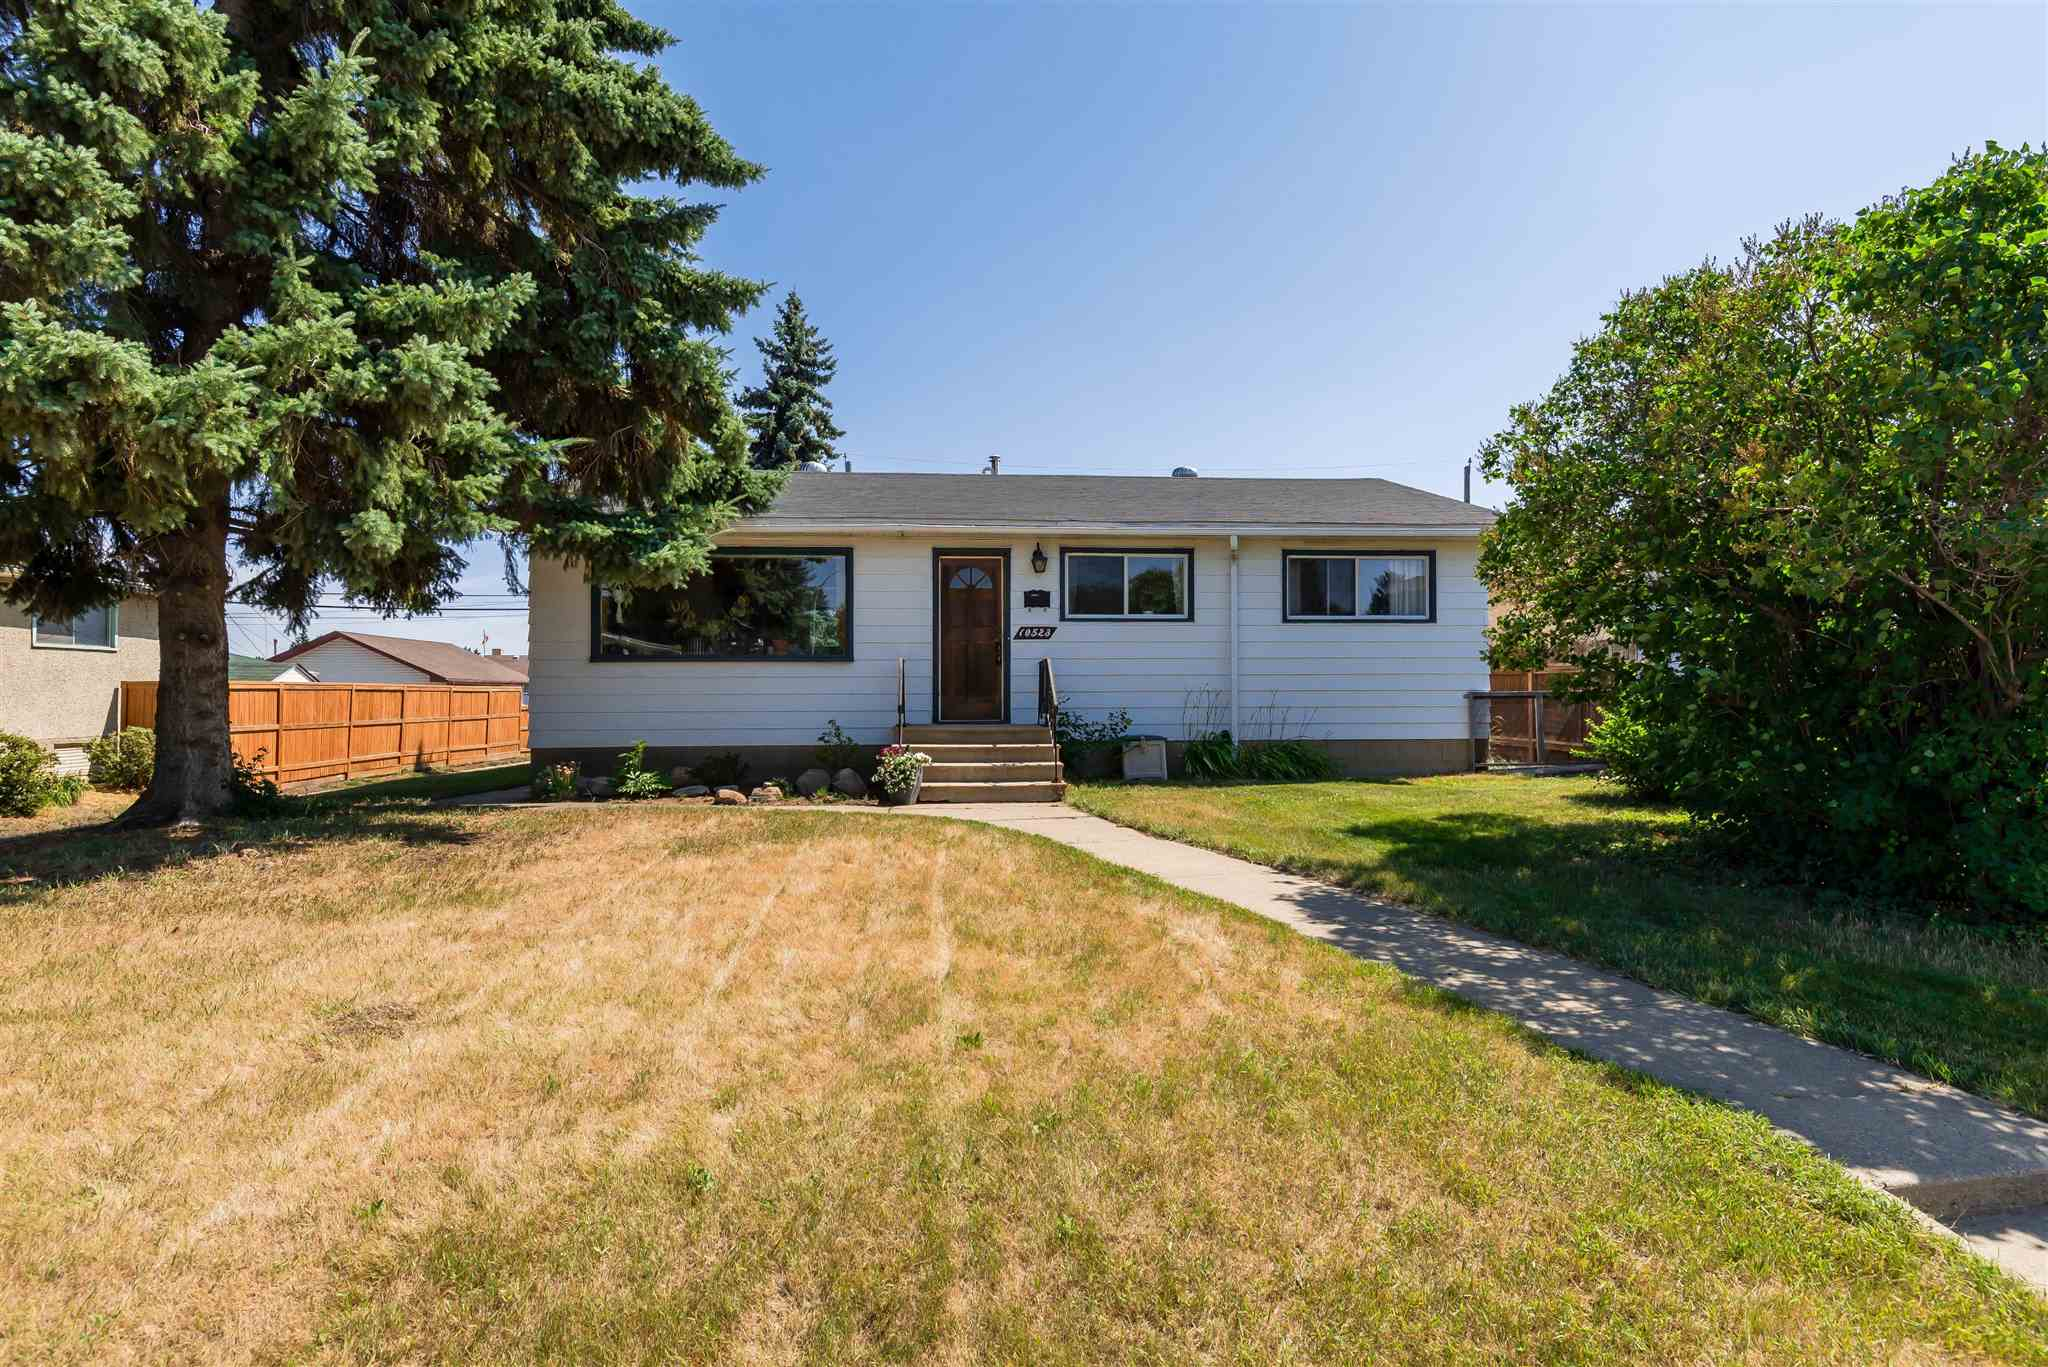 Welcome to this tastefully updated bungalow in the desirable neighbourhood of Gold Bar. With Gold Bar Park just a short walk away you?ll be able to take advantage of all the walking, biking and cross country ski trails available along the river. Getting to work is simple with access to downtown, the Anthony Henday, Wayne Gretzky Drive and Sherwood Park! Inside you?ll find a recently renovated, open concept main floor with solid hardwood, new kitchen and remodelled bathroom. In the backyard you?ll find a large deck perfect for entertaining. Downstairs includes a large rec room plus an additional bedroom and bathroom. This home also has the added bonus of having a fully functional sauna included!